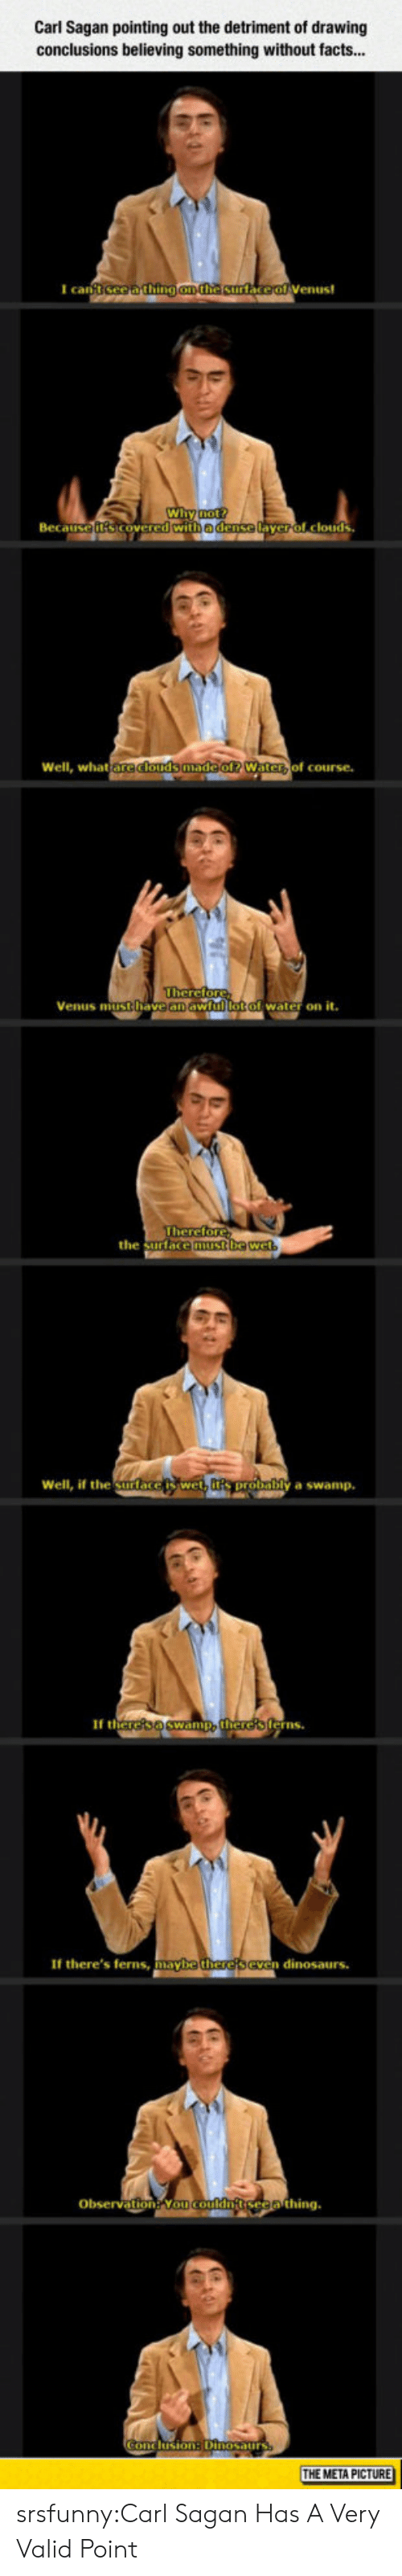 Facts, Tumblr, and Yo: Carl Sagan pointing out the detriment of drawing  conclusions believing something without facts...  I can  Wi  Beca  edense  yerol clouds  Well, what  of course.  Venus mitithave an aw  water on it.  the surtace  Well, if the Surlace  y a swamp.  If th  erns  If there's ferns,  maybe  n dinosaurs.  Obsevation Yo  THE META PICTURE srsfunny:Carl Sagan Has A Very Valid Point